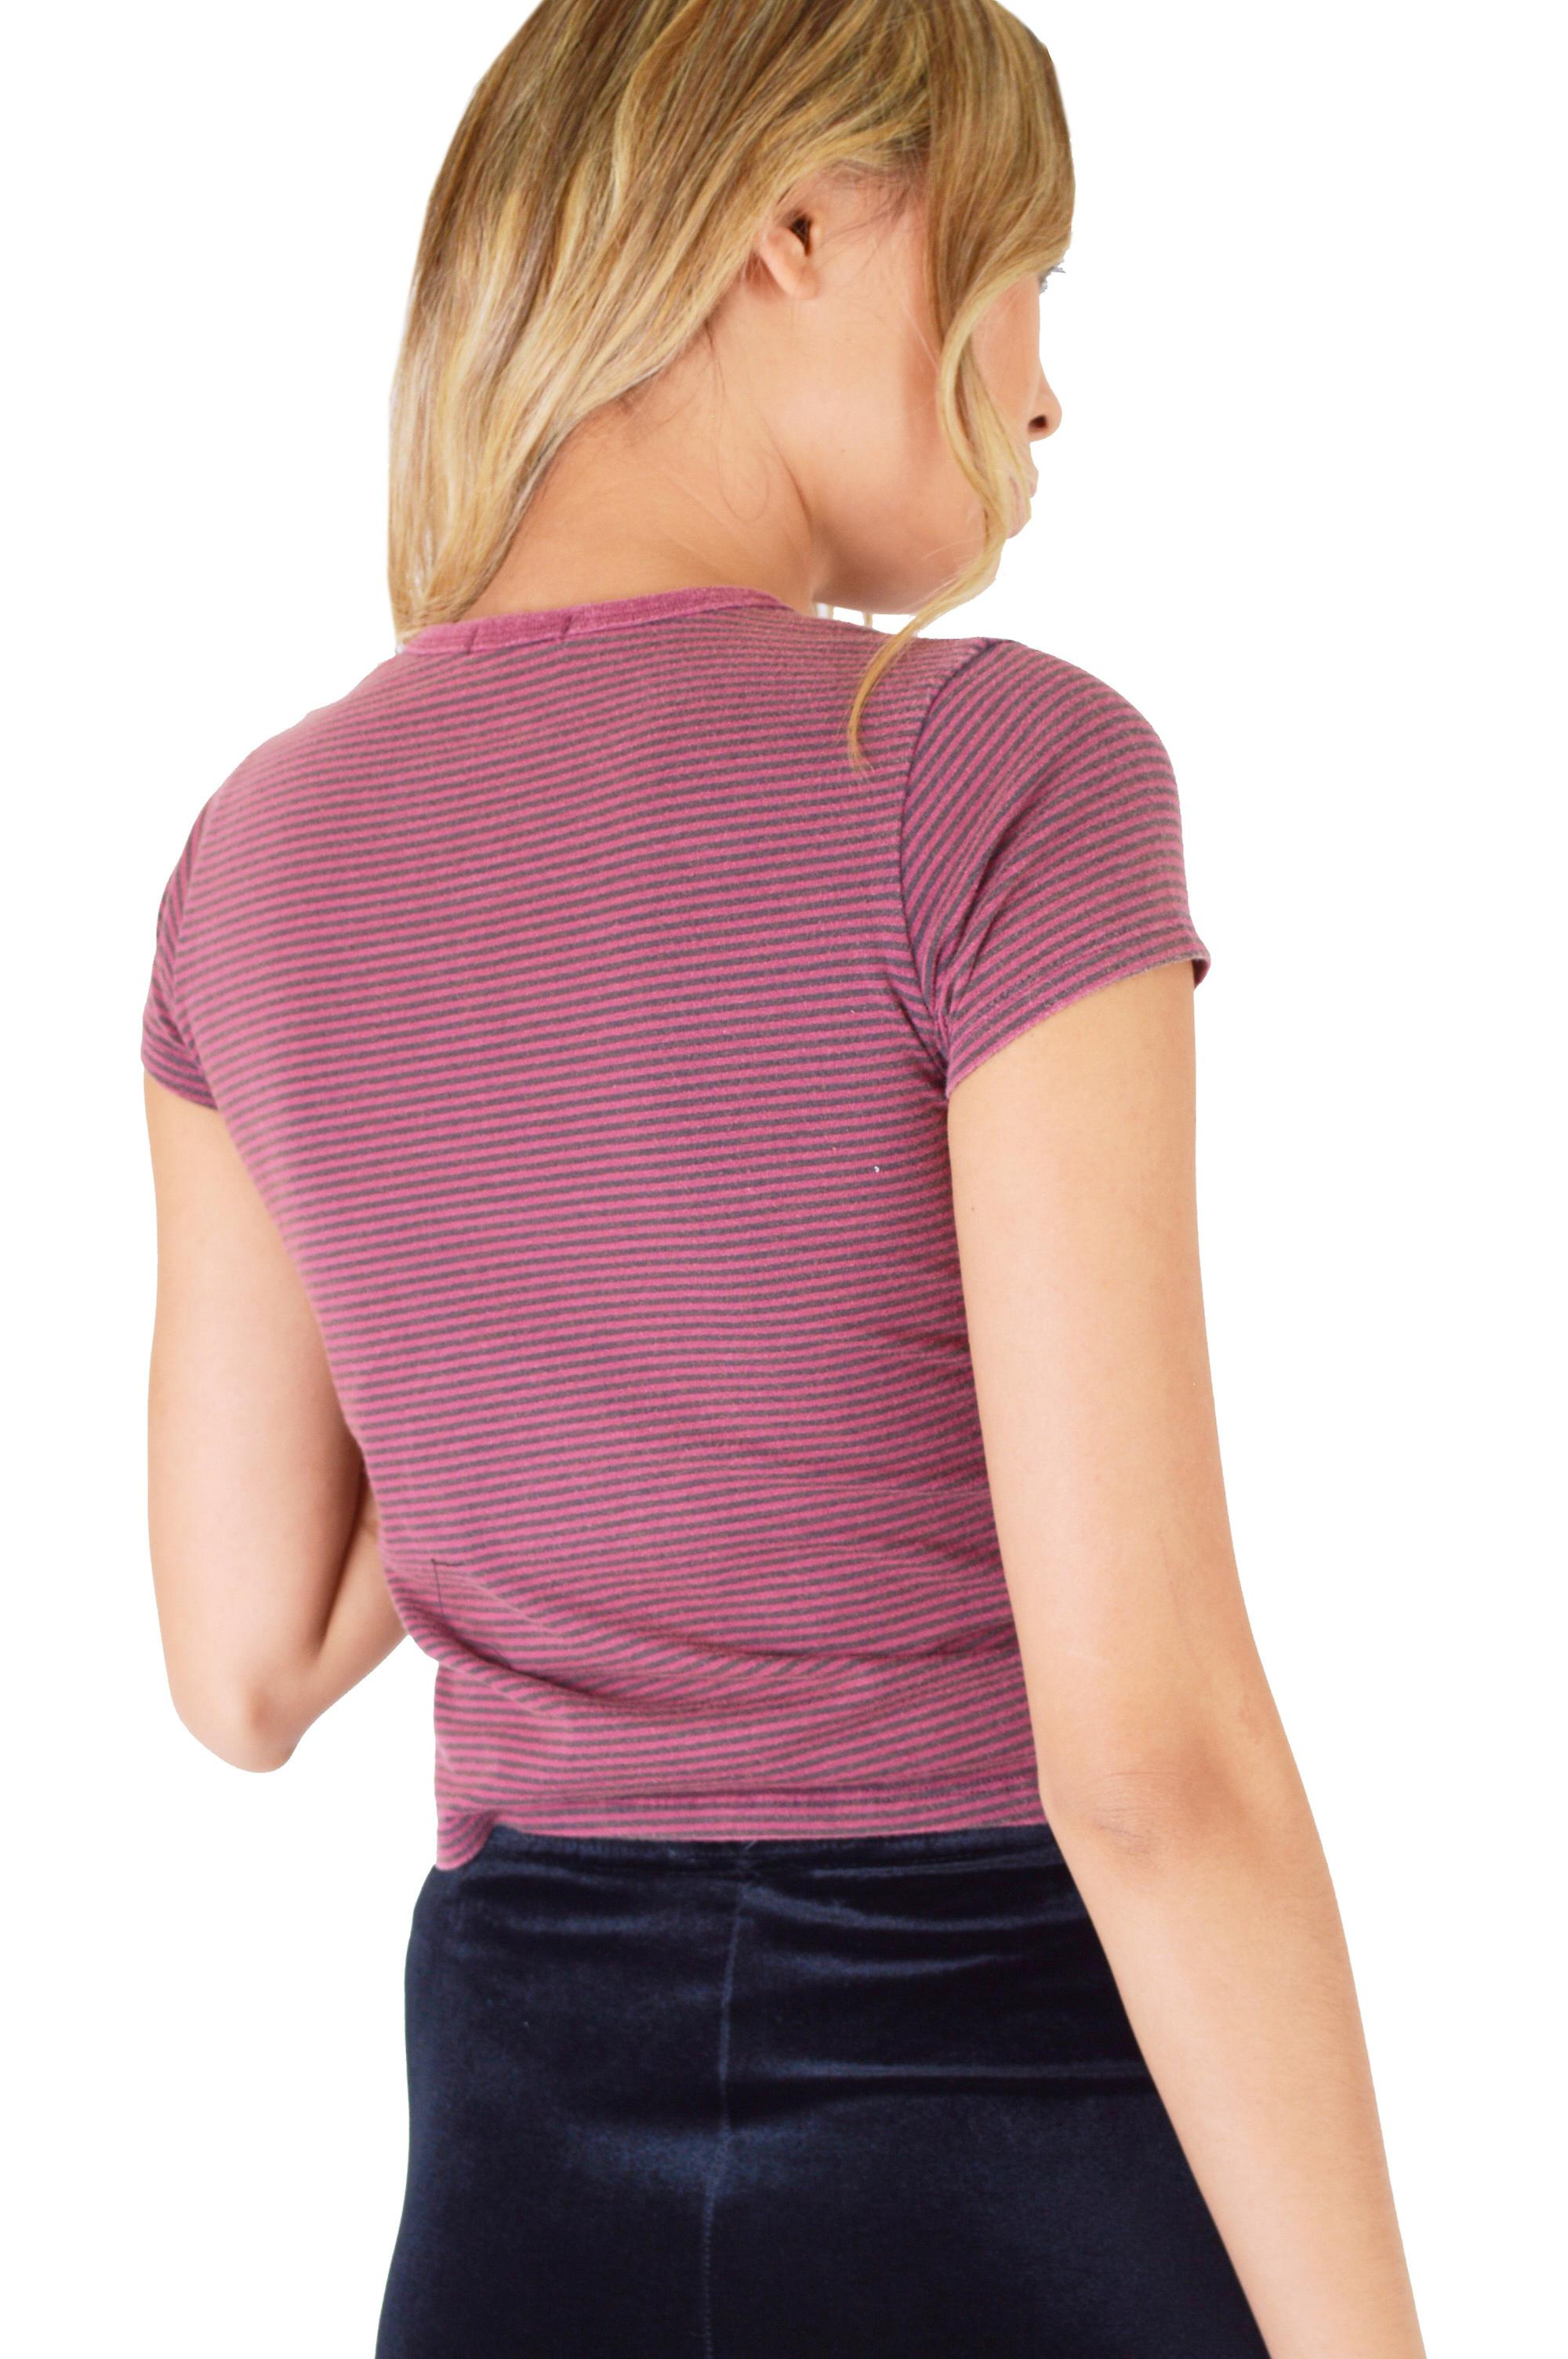 Double Agent Purple Stripe Crop T-Shirt Featuring 'Hollywood' Embroidery